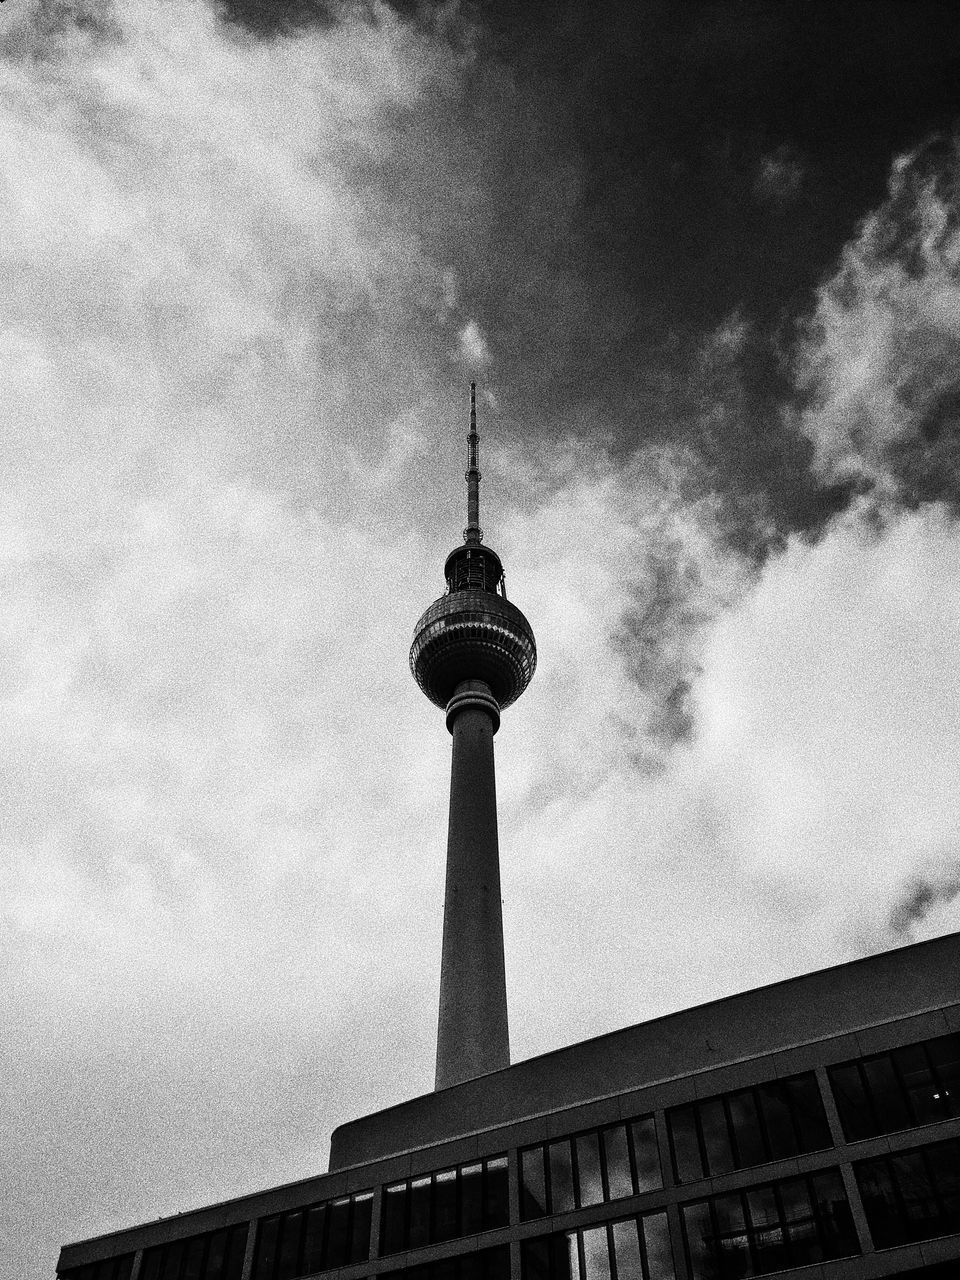 architecture, built structure, building exterior, tall - high, spire, communication, sky, low angle view, television tower, travel destinations, cloud - sky, tower, city, outdoors, no people, tourism, travel, modern, day